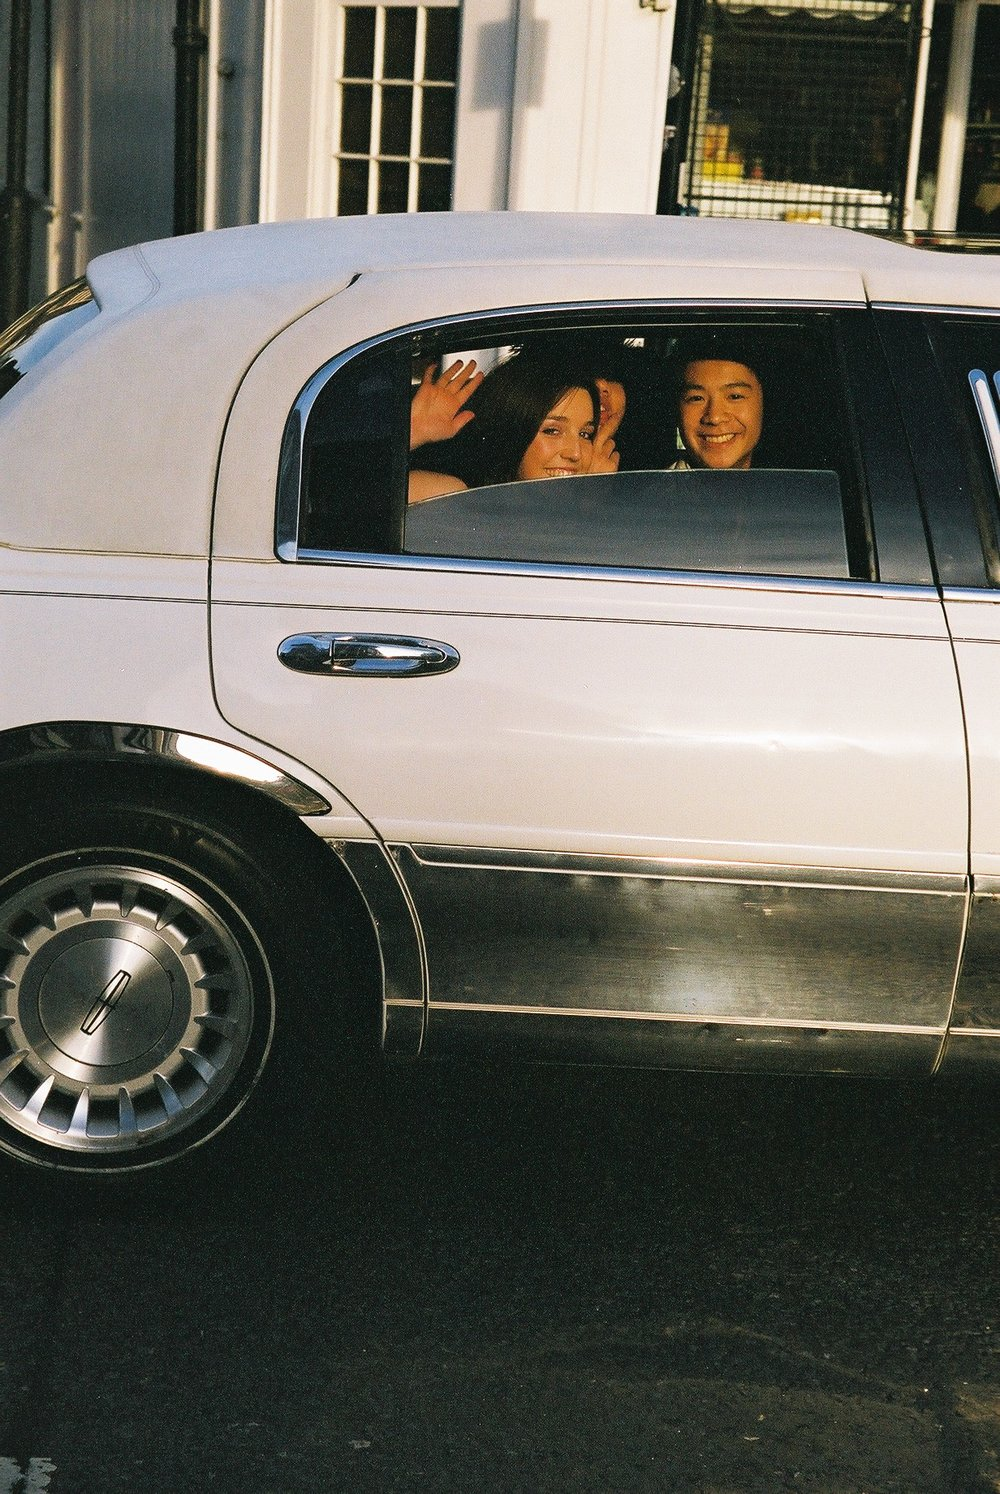 Teens in Limousine, Kings Cross.JPG